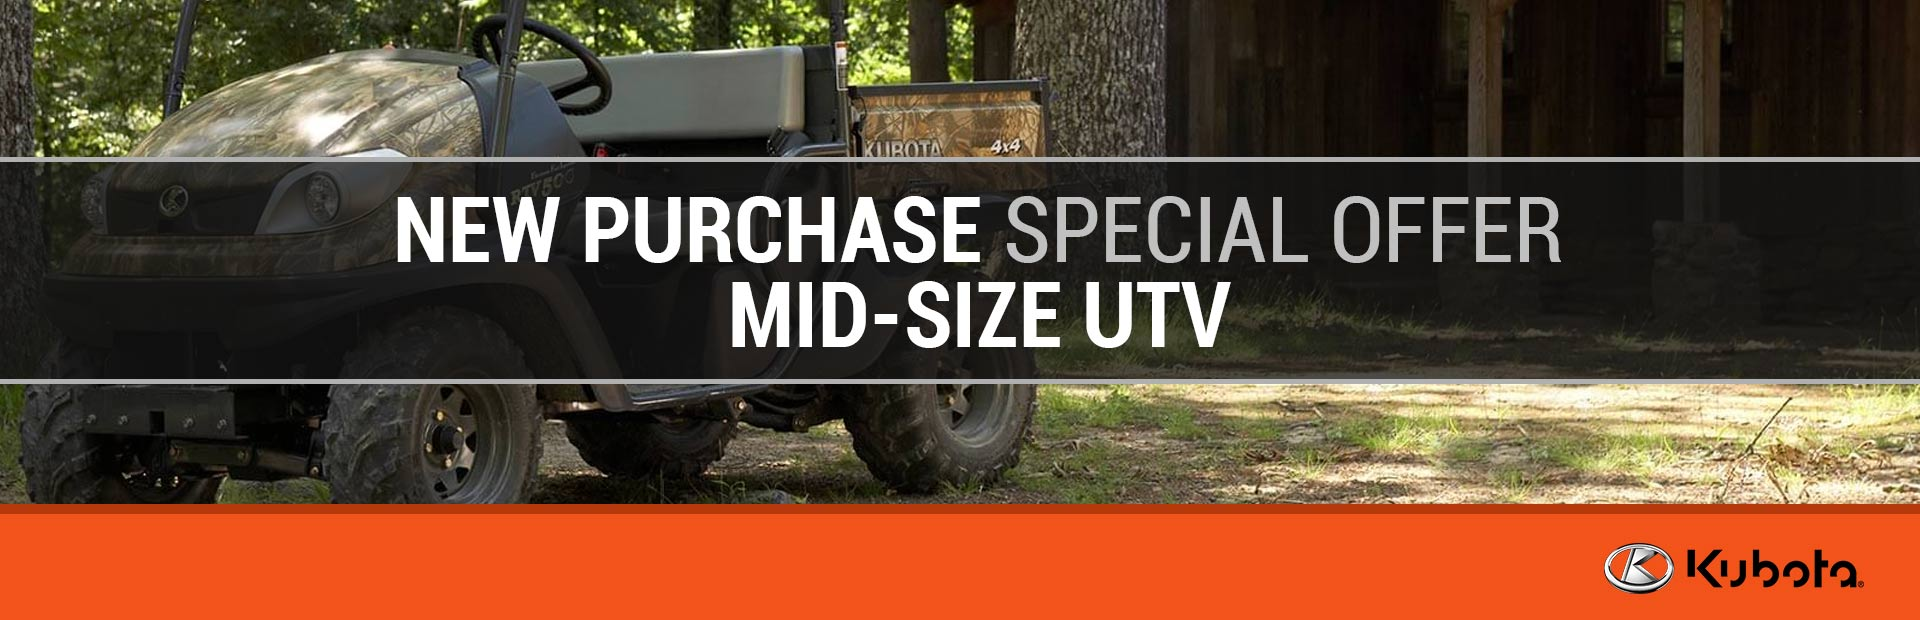 Kubota: New Purchase Special Offer - Mid-Size UTV